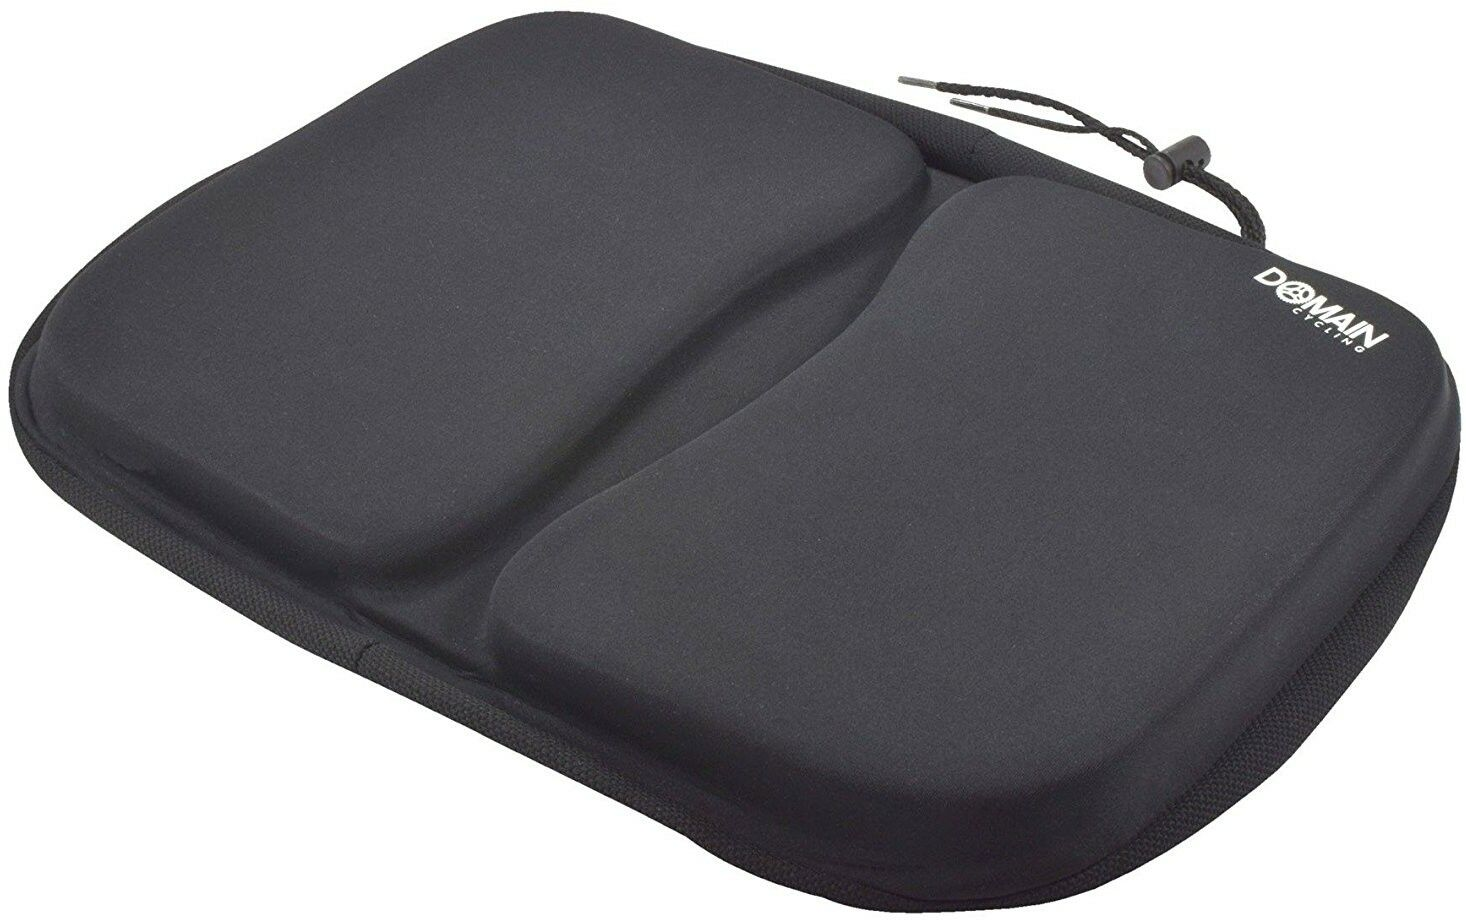 EXTRA Large Gel Exercise Bike Seat Cushion Cover, Stationary Recumbent Bicycle